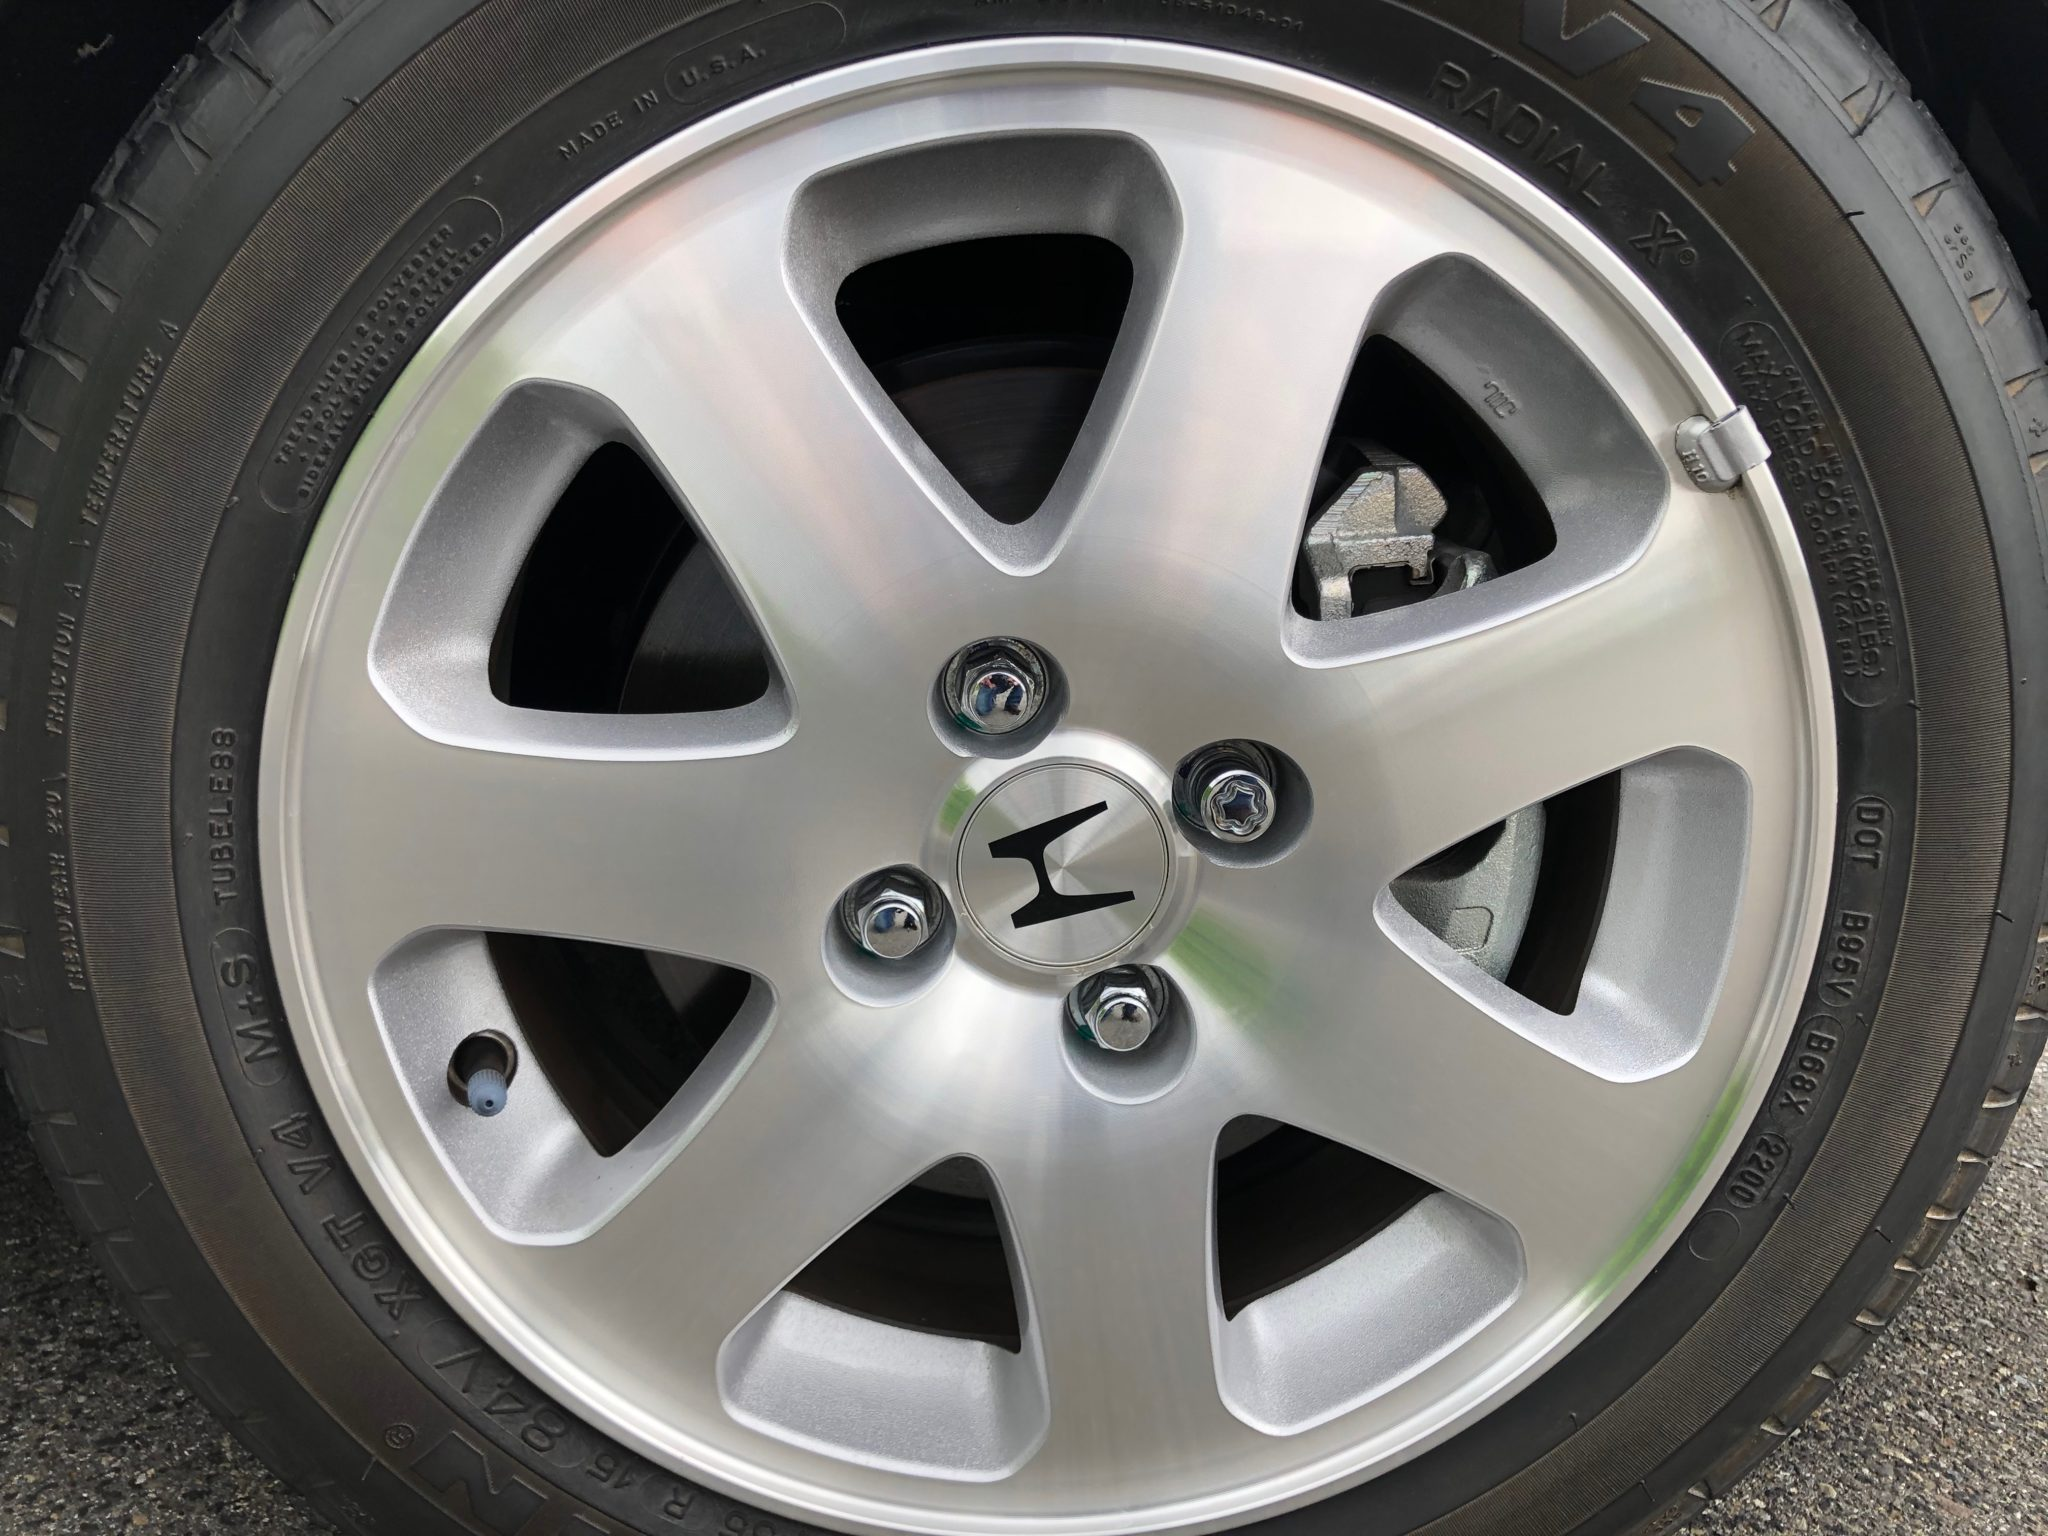 2000 Honda Civic Si Wheel